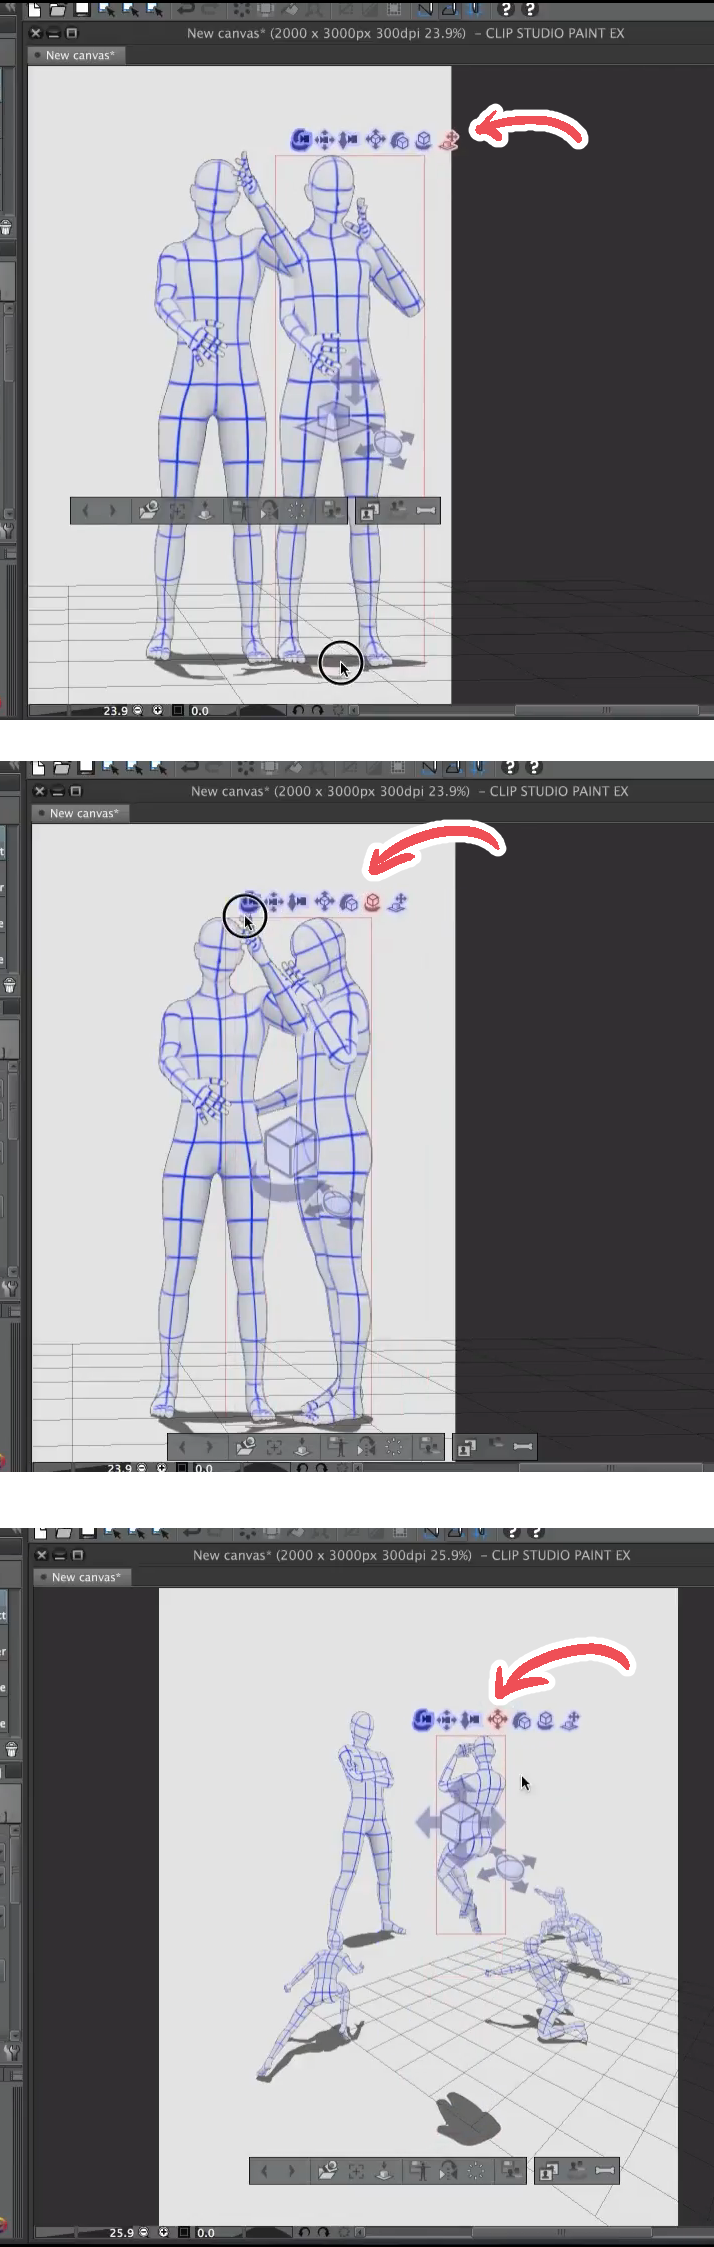 moving 3d models clip studio paint